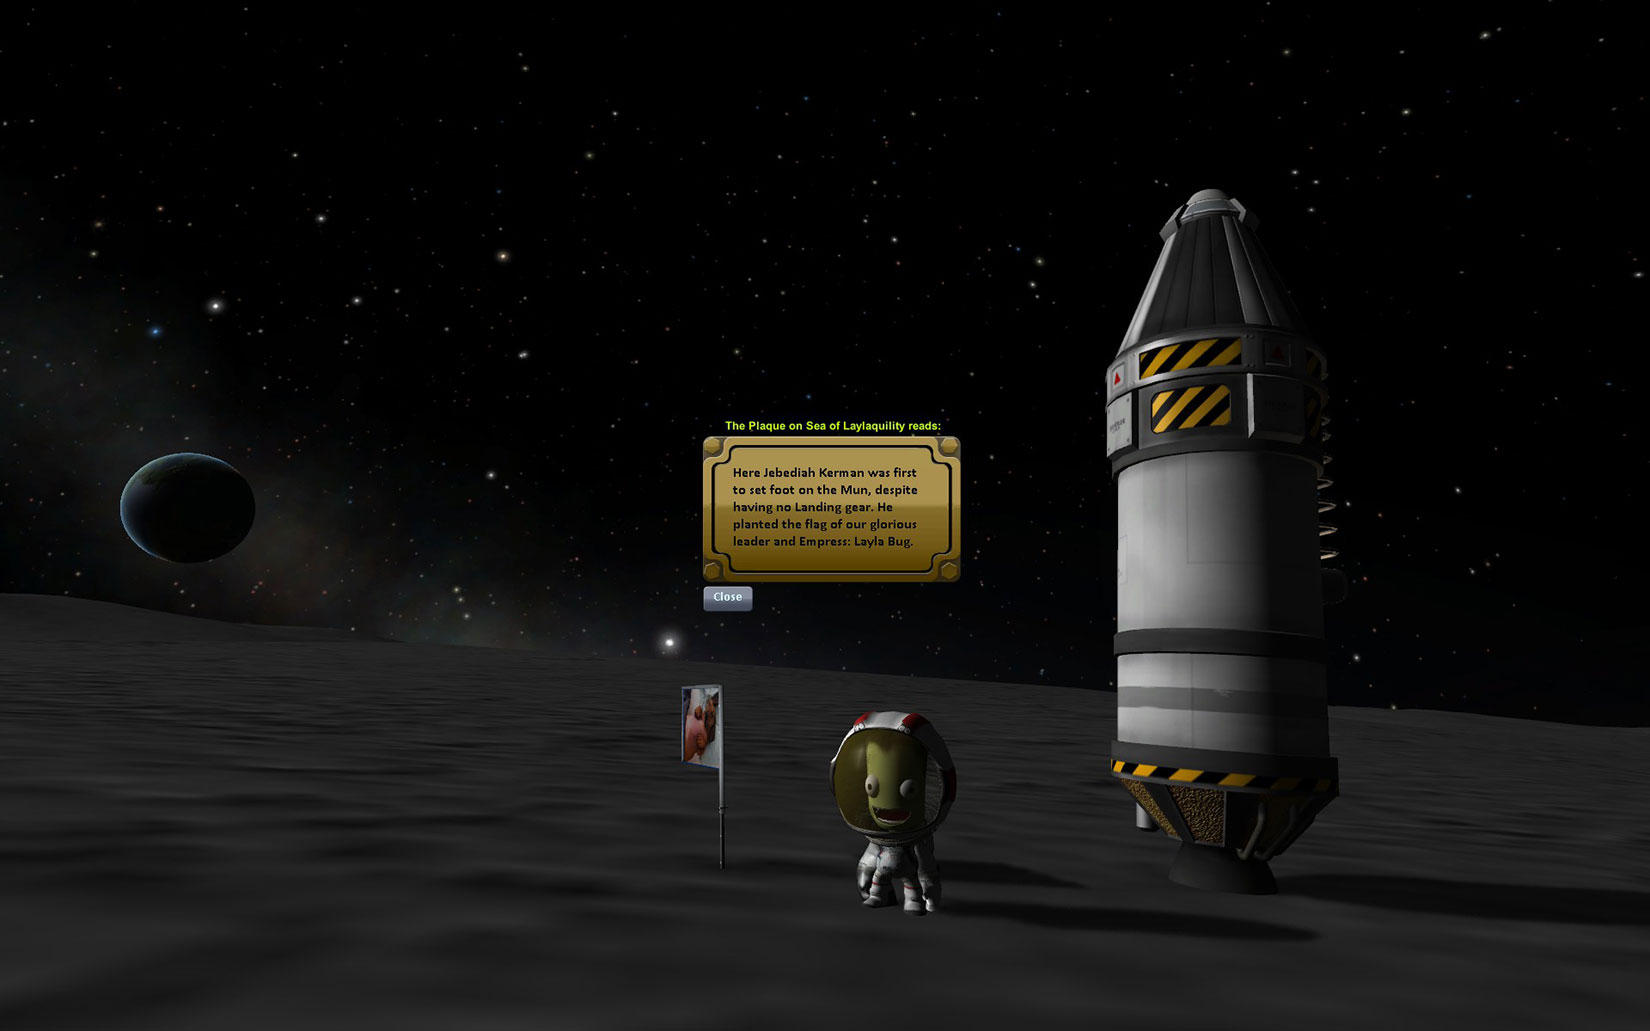 Plant Flag Kerbal Space Program (page 2) - Pics about space